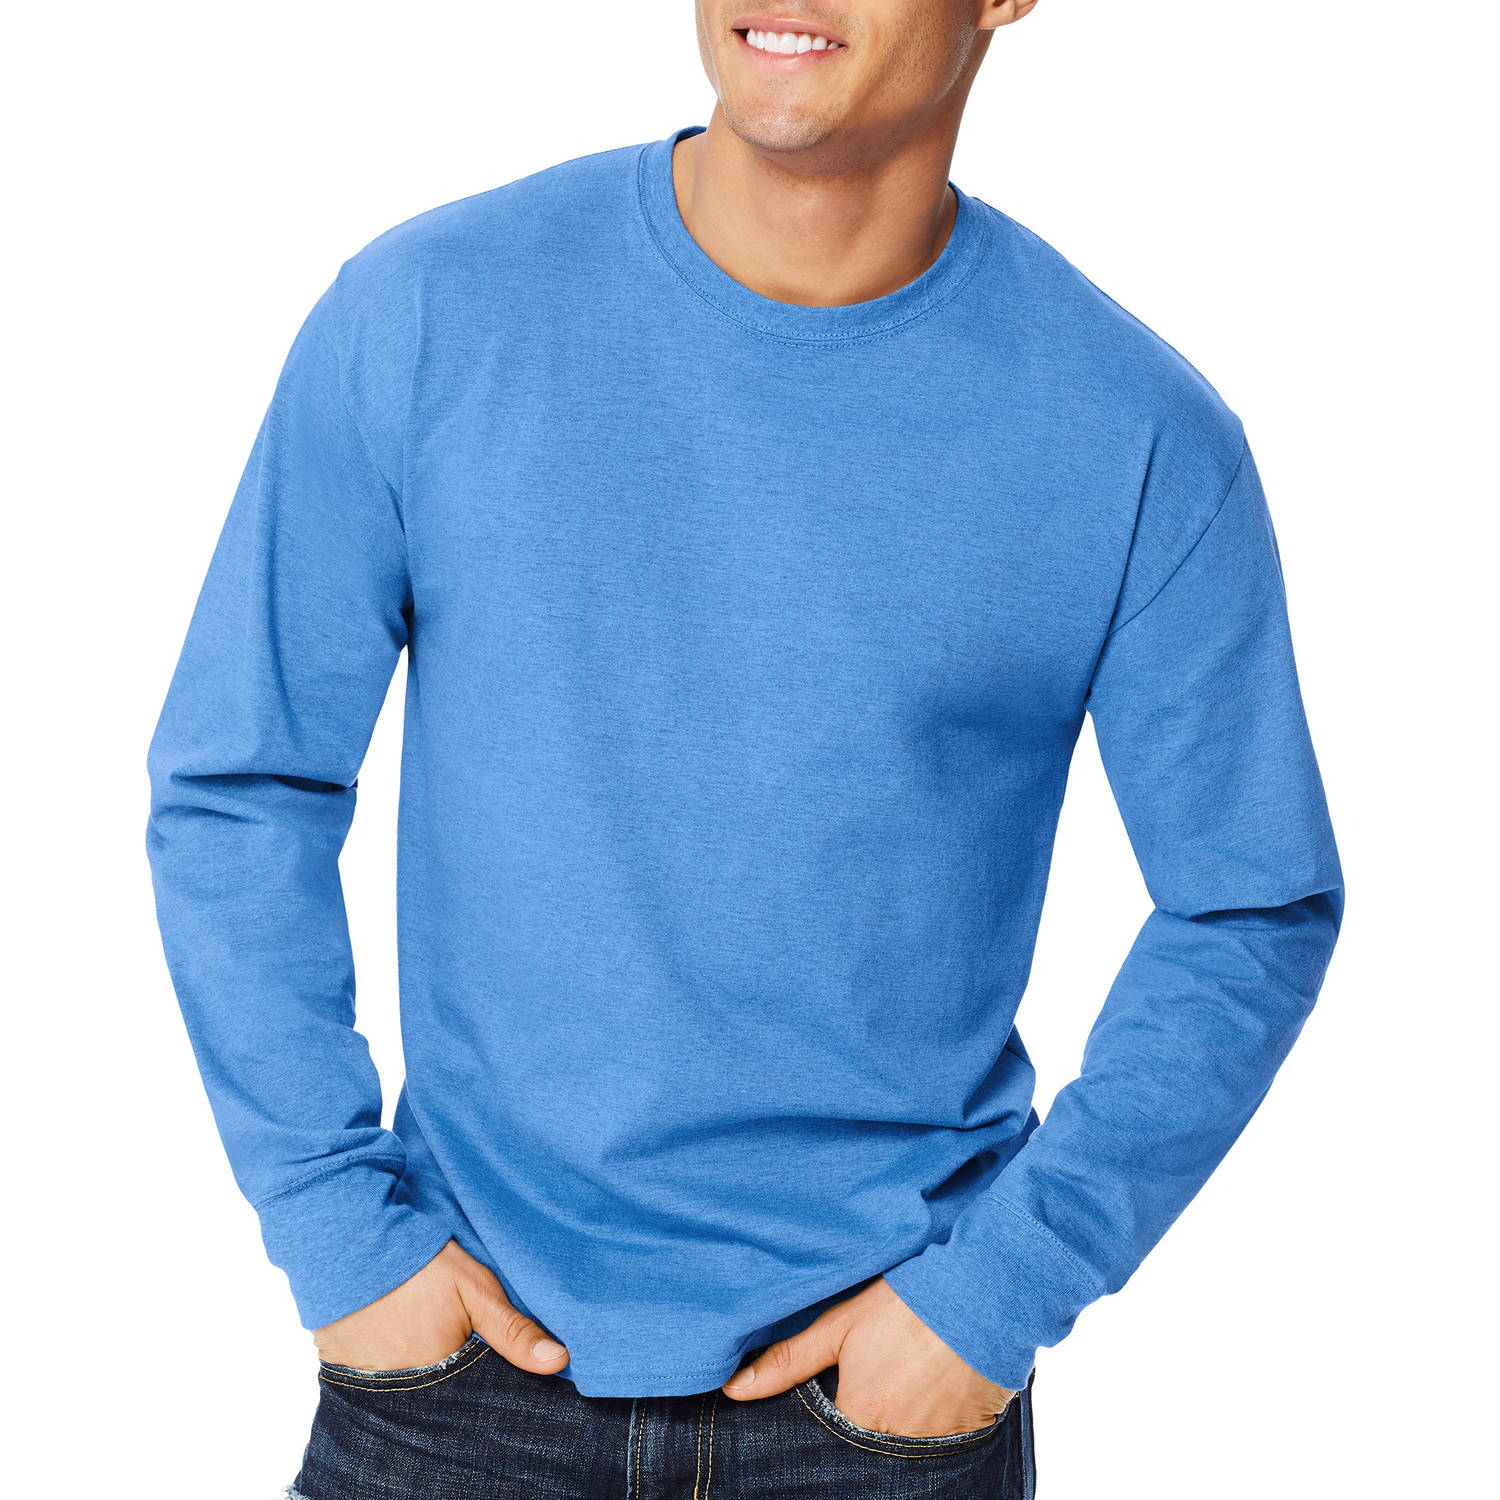 Hanes Men's X-temp Long Sleeve T-shirt